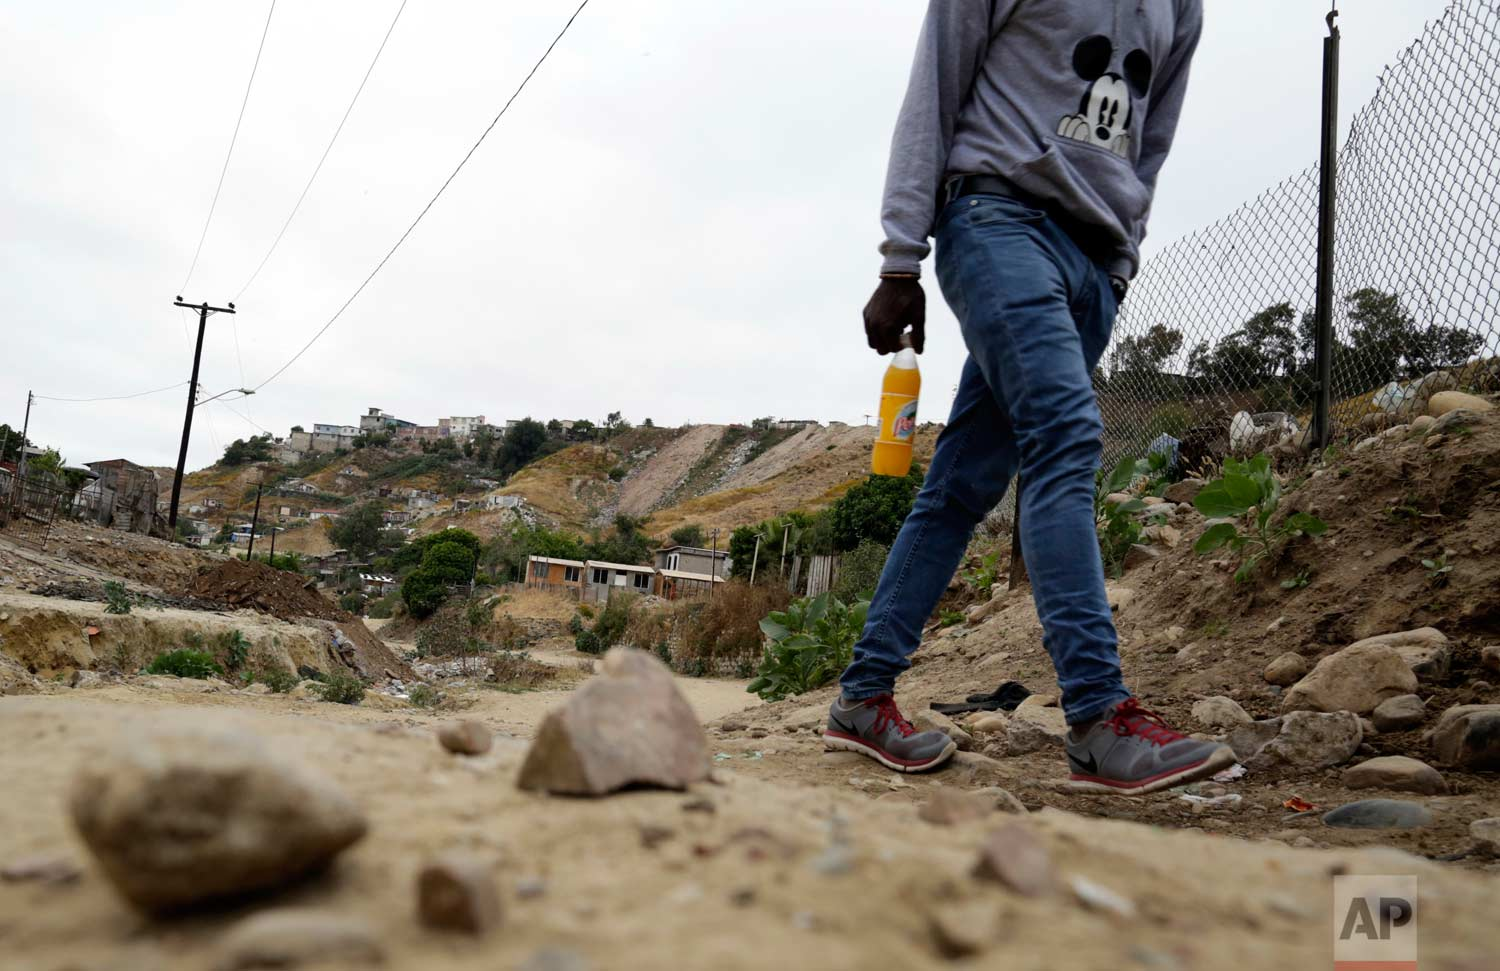 In this May 24, 2017 photo, a Haitian man makes his way up a dirt road towards a makeshift shelter at The Ambassadors of Jesus Church in Tijuana, Mexico. (AP Photo/Gregory Bull)